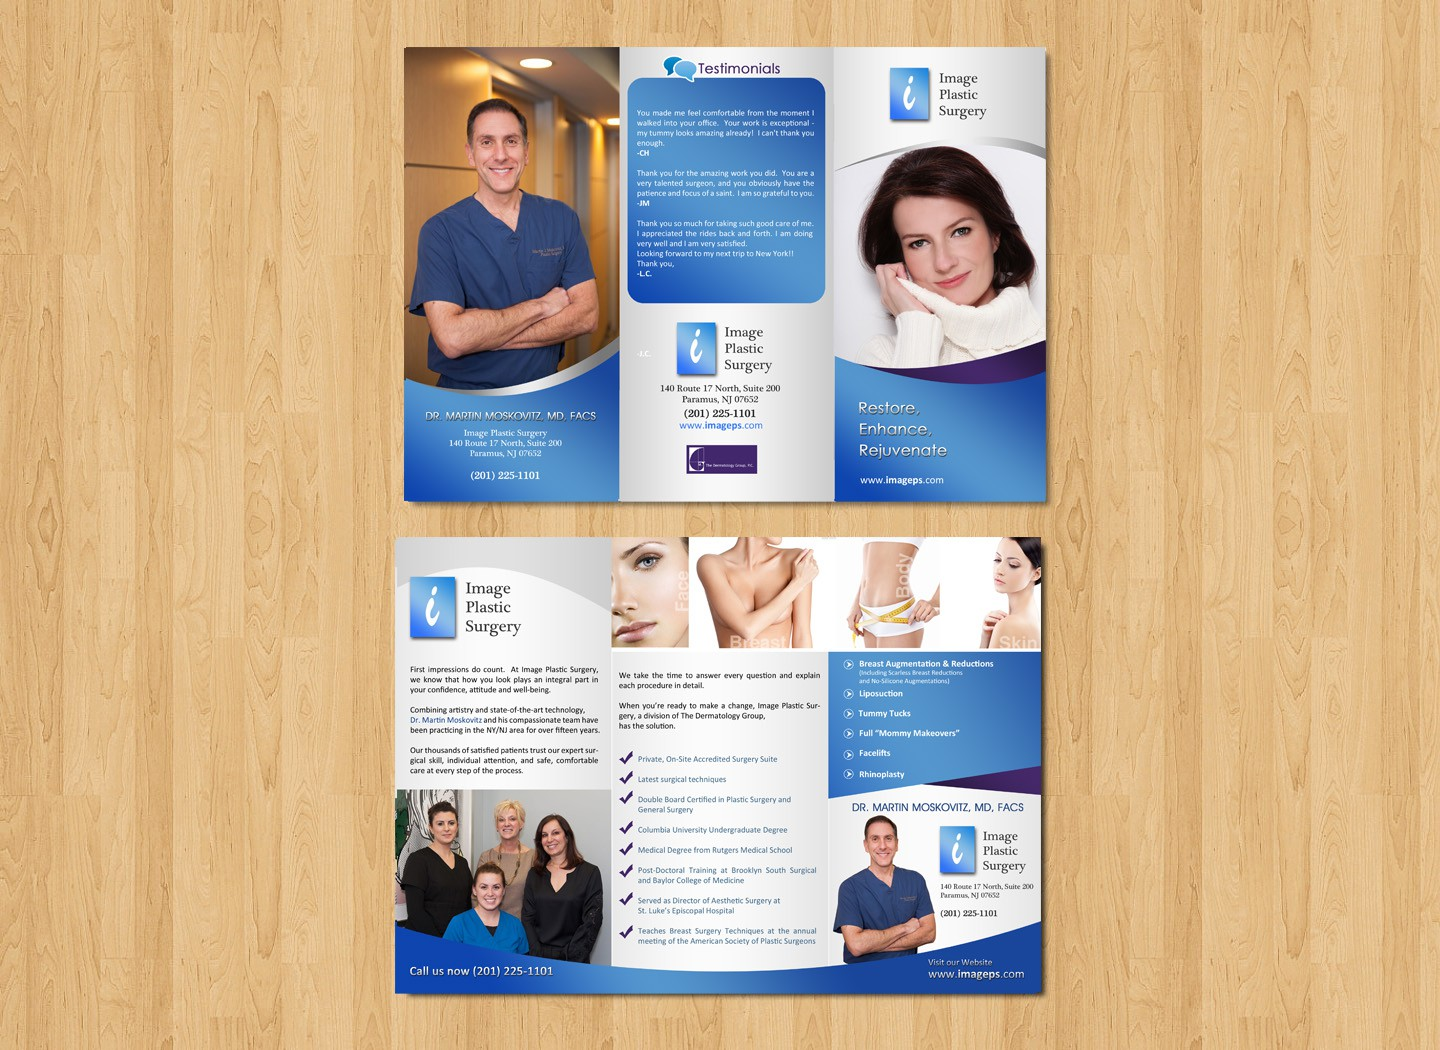 Help Image Plastic Surgery with a new brochure design